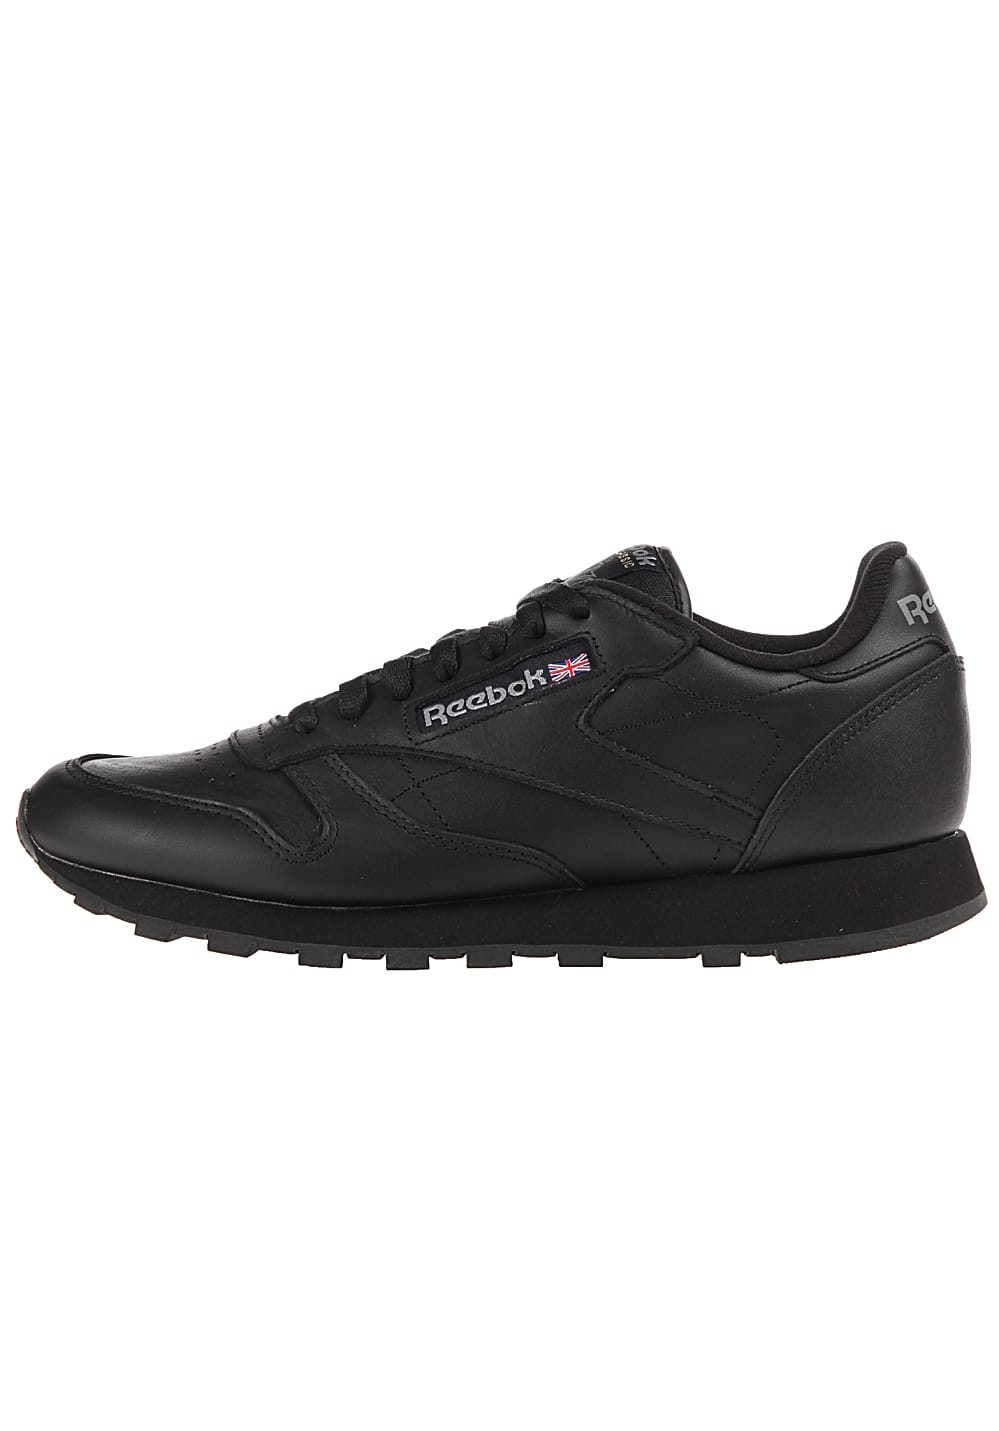 reebok classic lthr sneaker f r herren schwarz planet sports. Black Bedroom Furniture Sets. Home Design Ideas